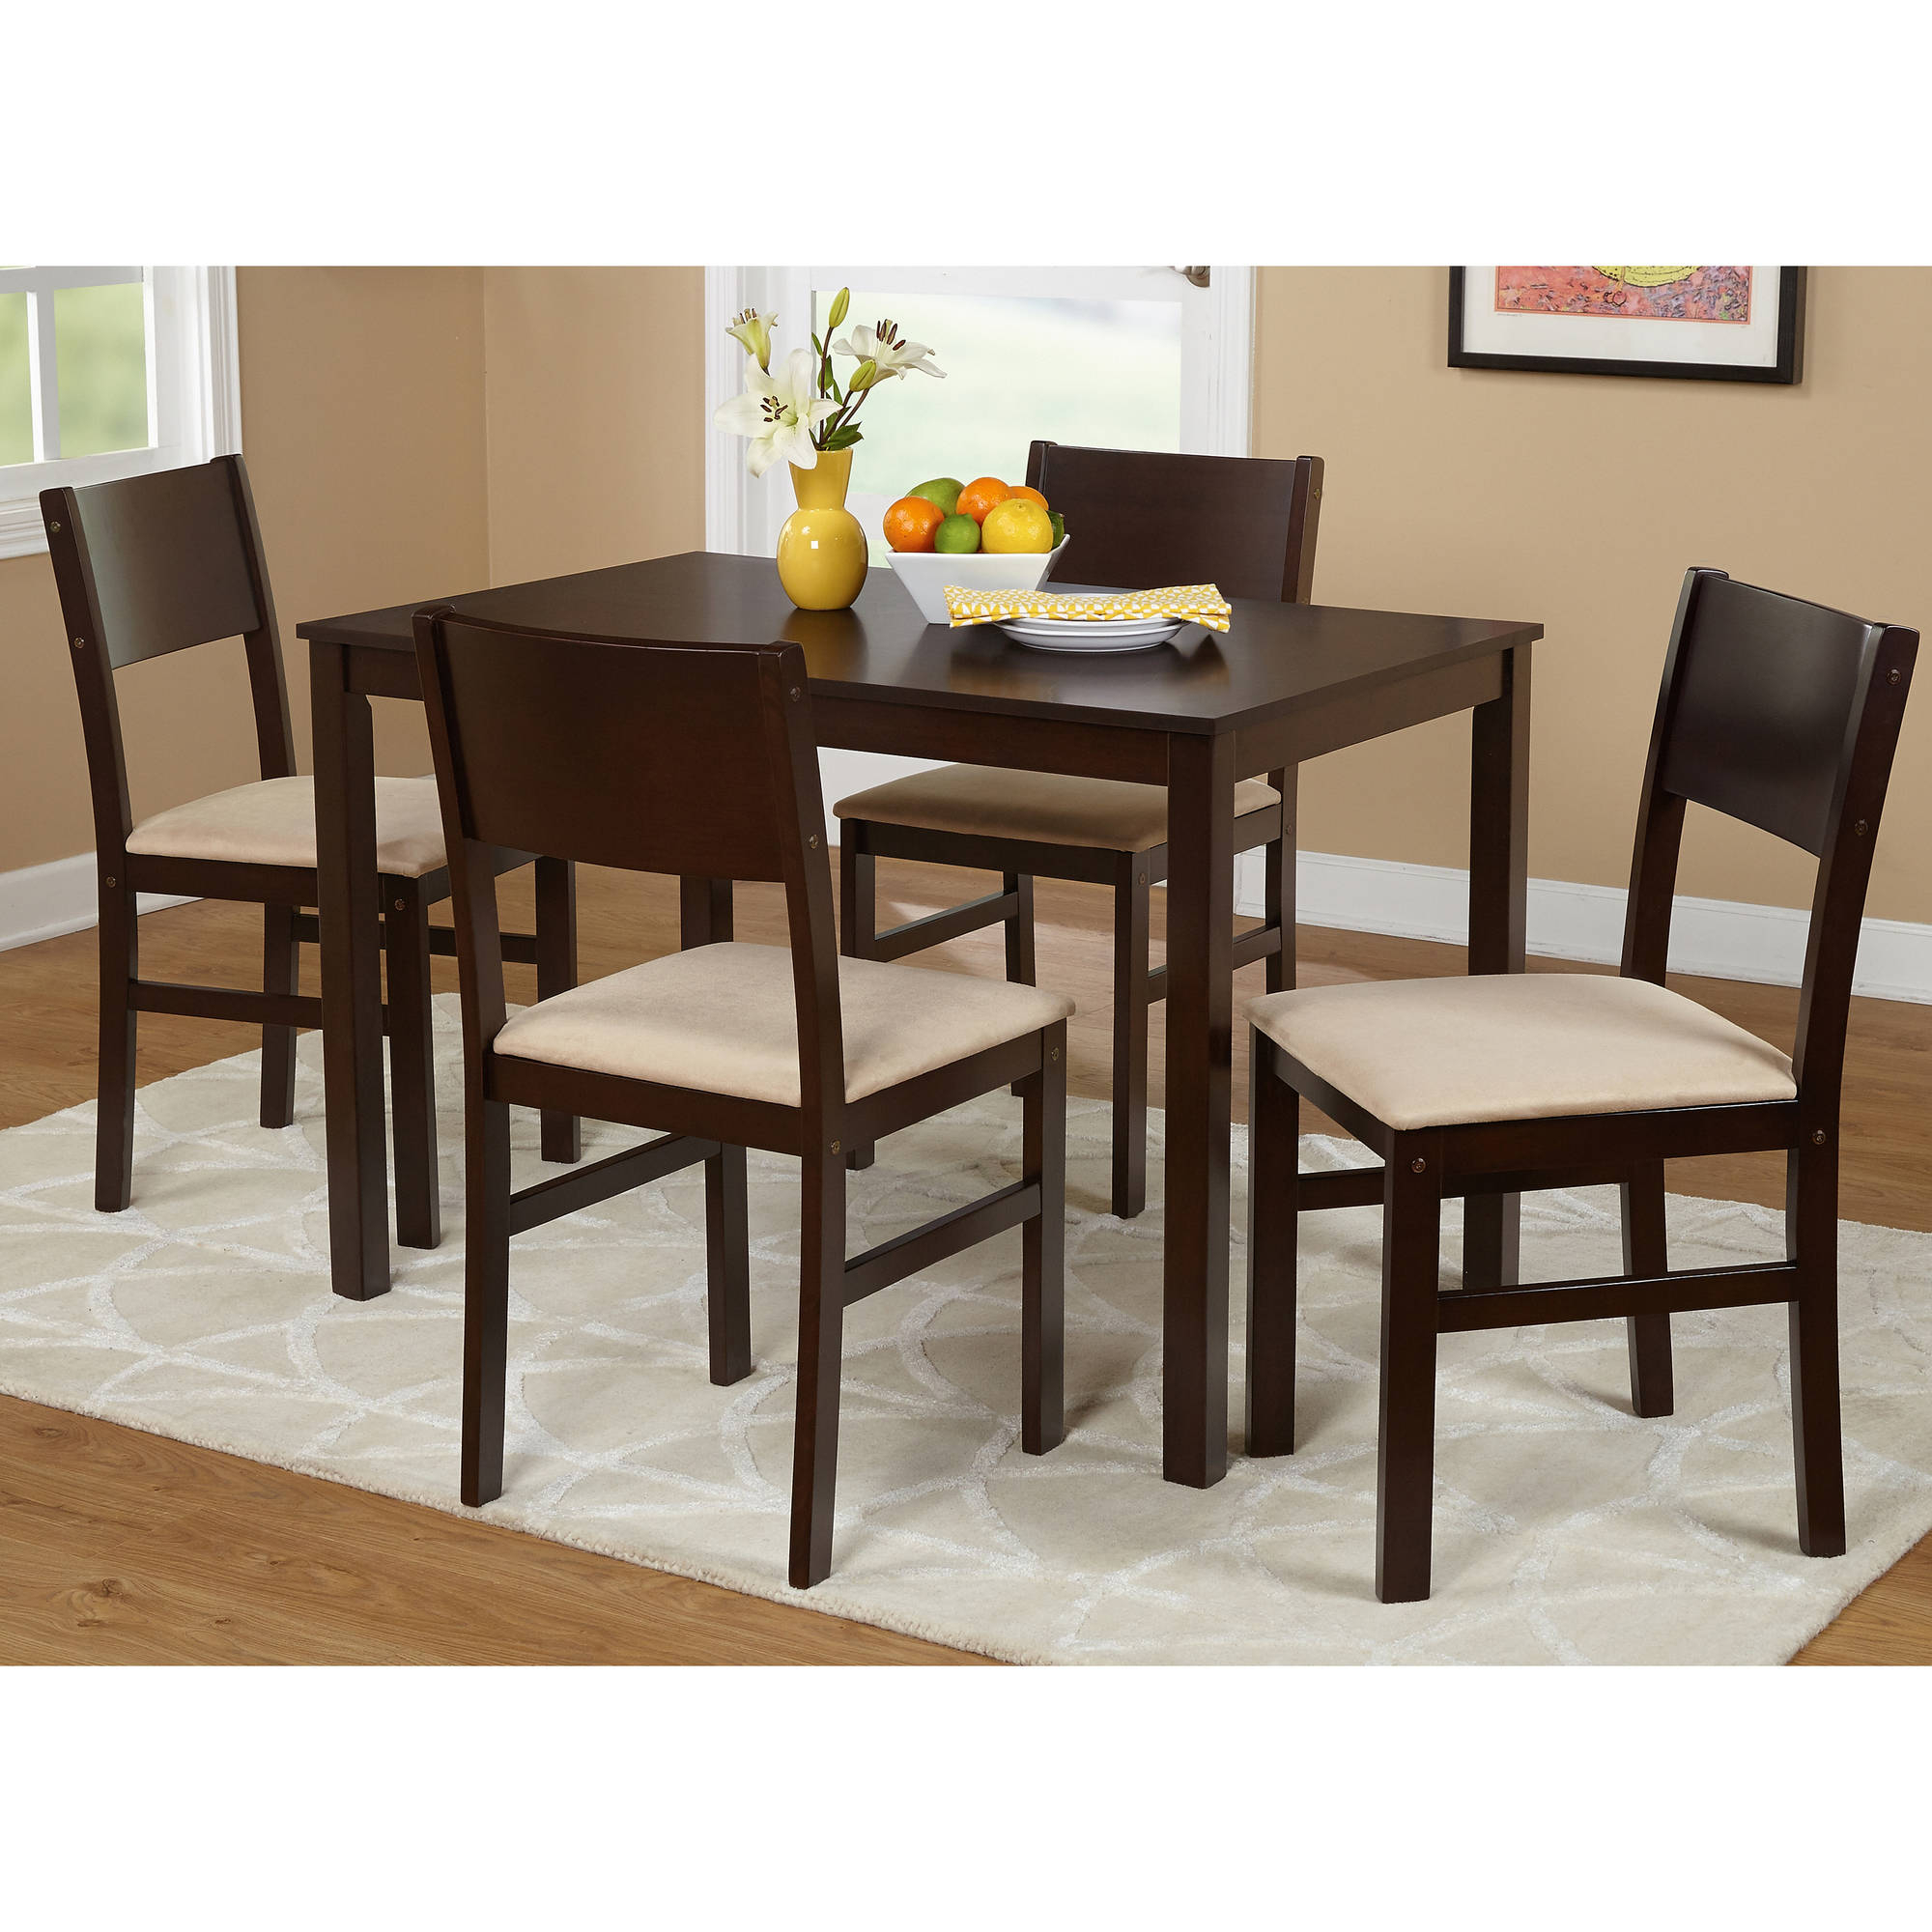 Famous Winsted 4 Piece Counter Height Dining Sets With Kitchen Table Sets Under 300 & Dining Room Sets Under 300 Kitchen (View 7 of 25)